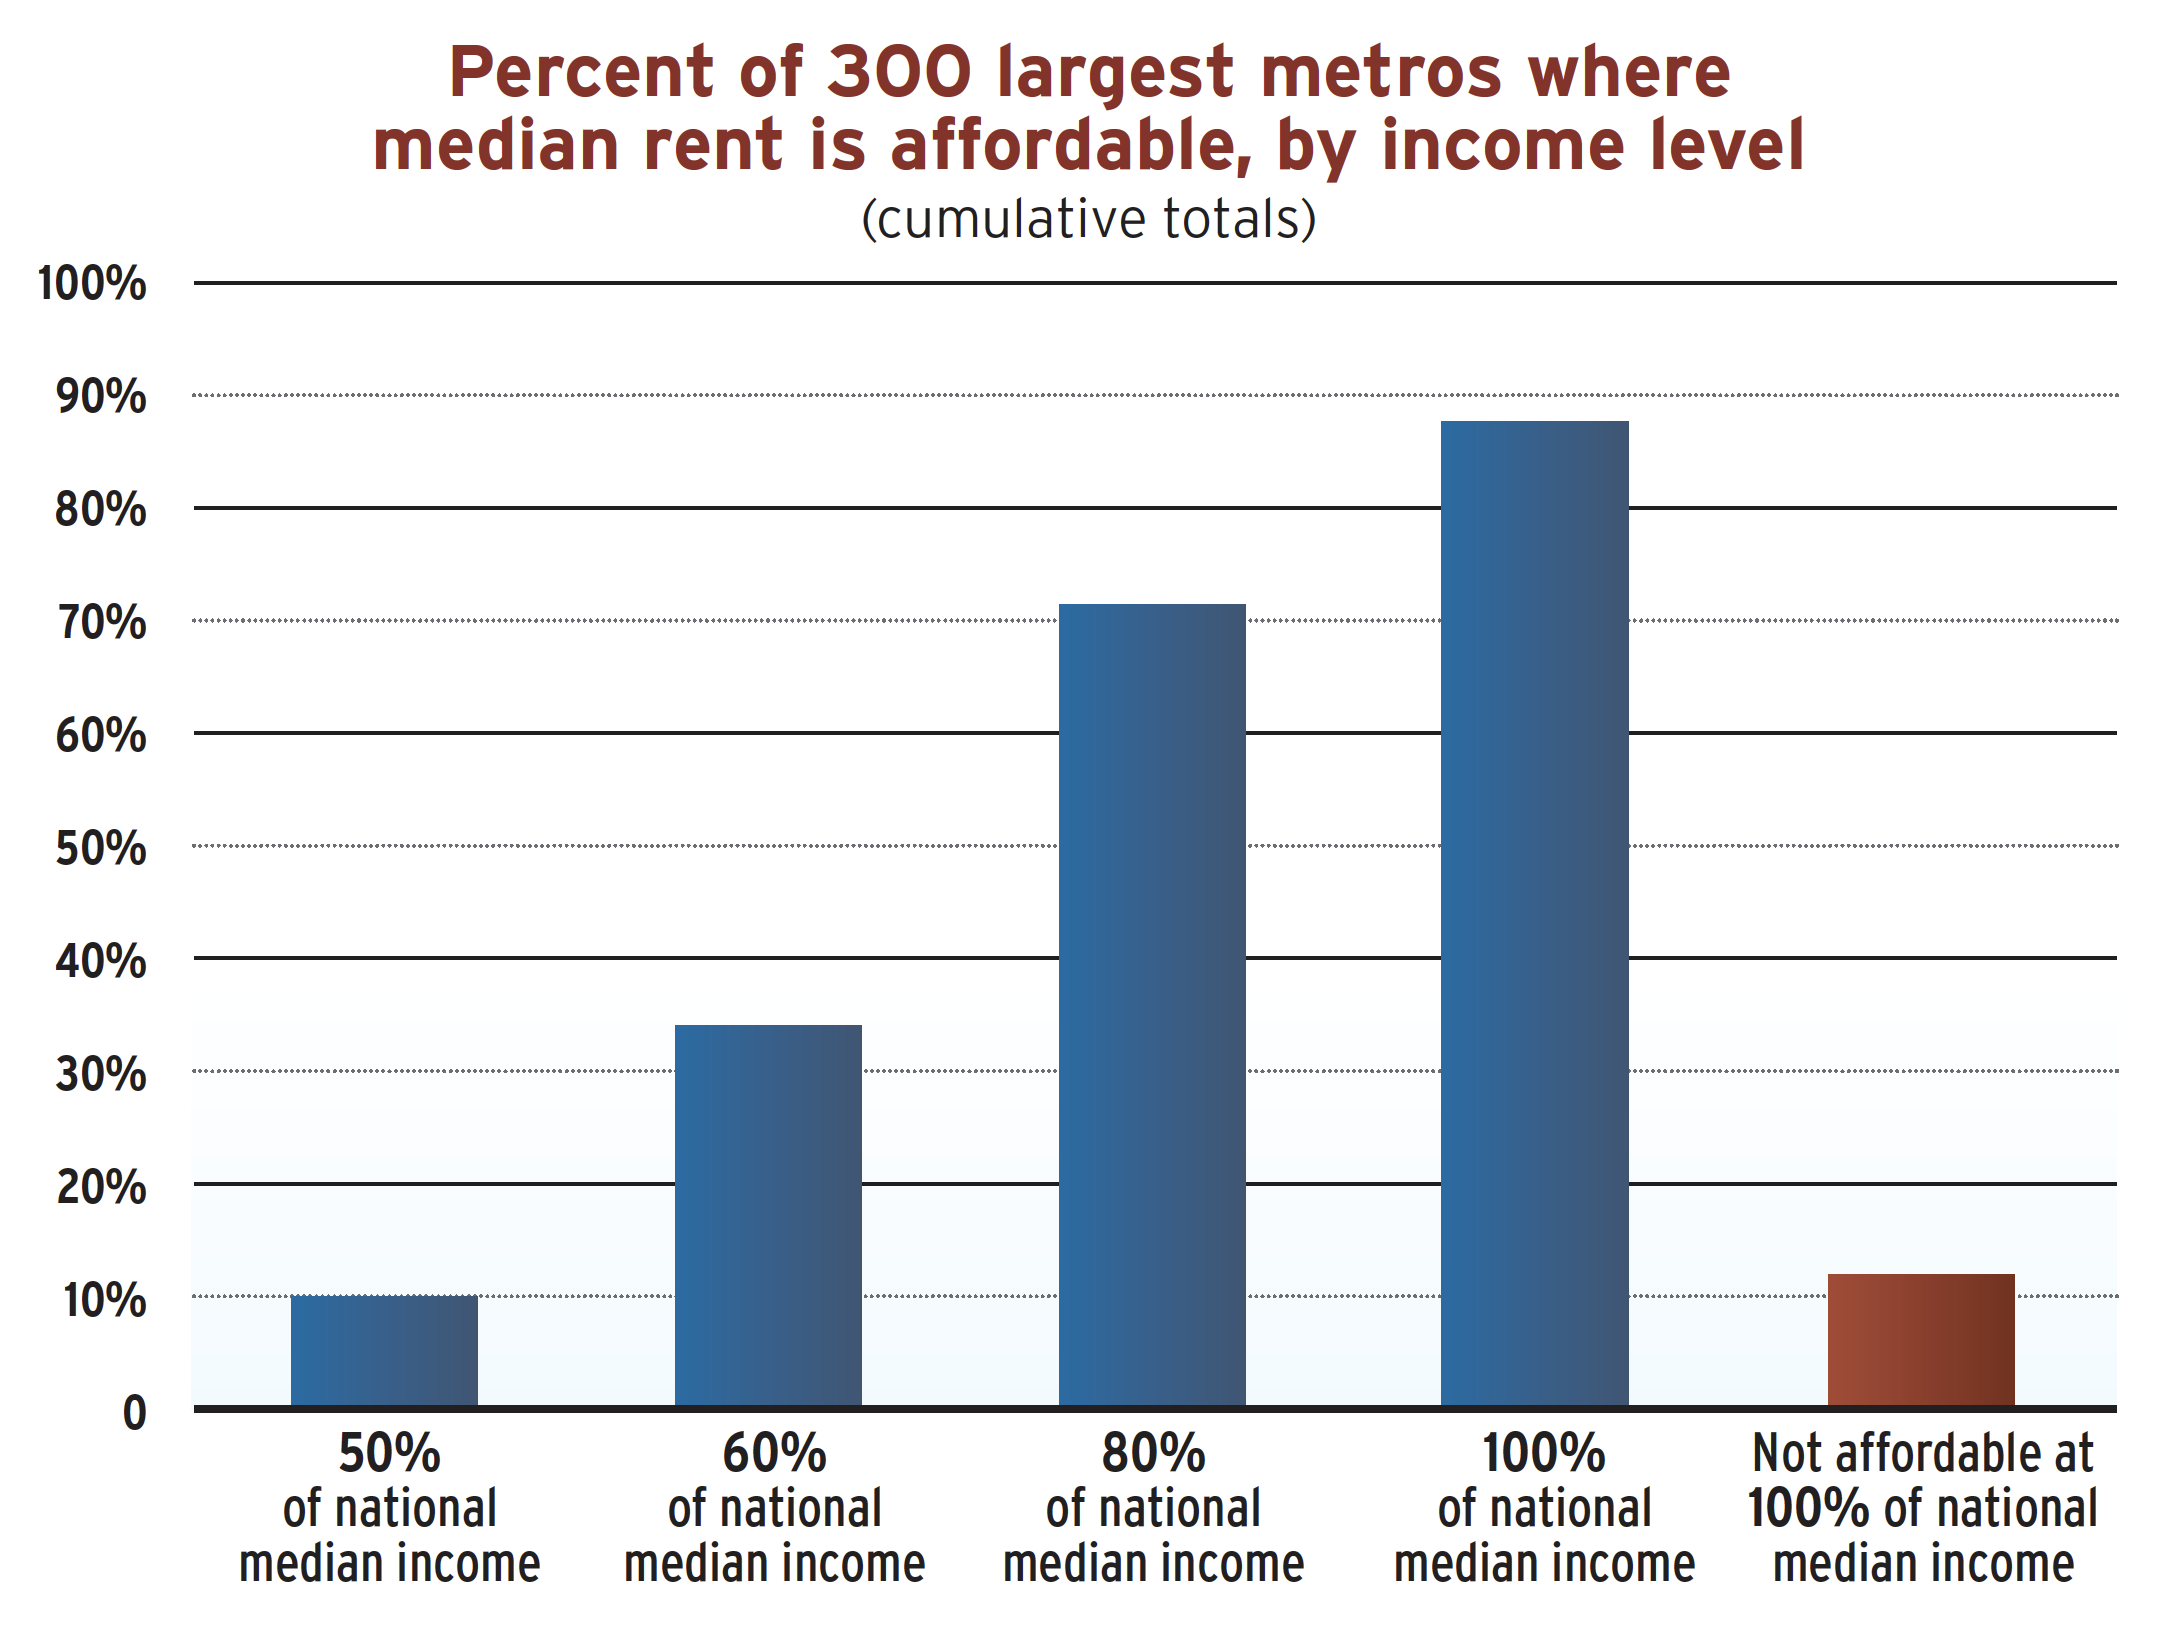 A graphic that shows the precent of 300 largest metros where median rent is affordable.